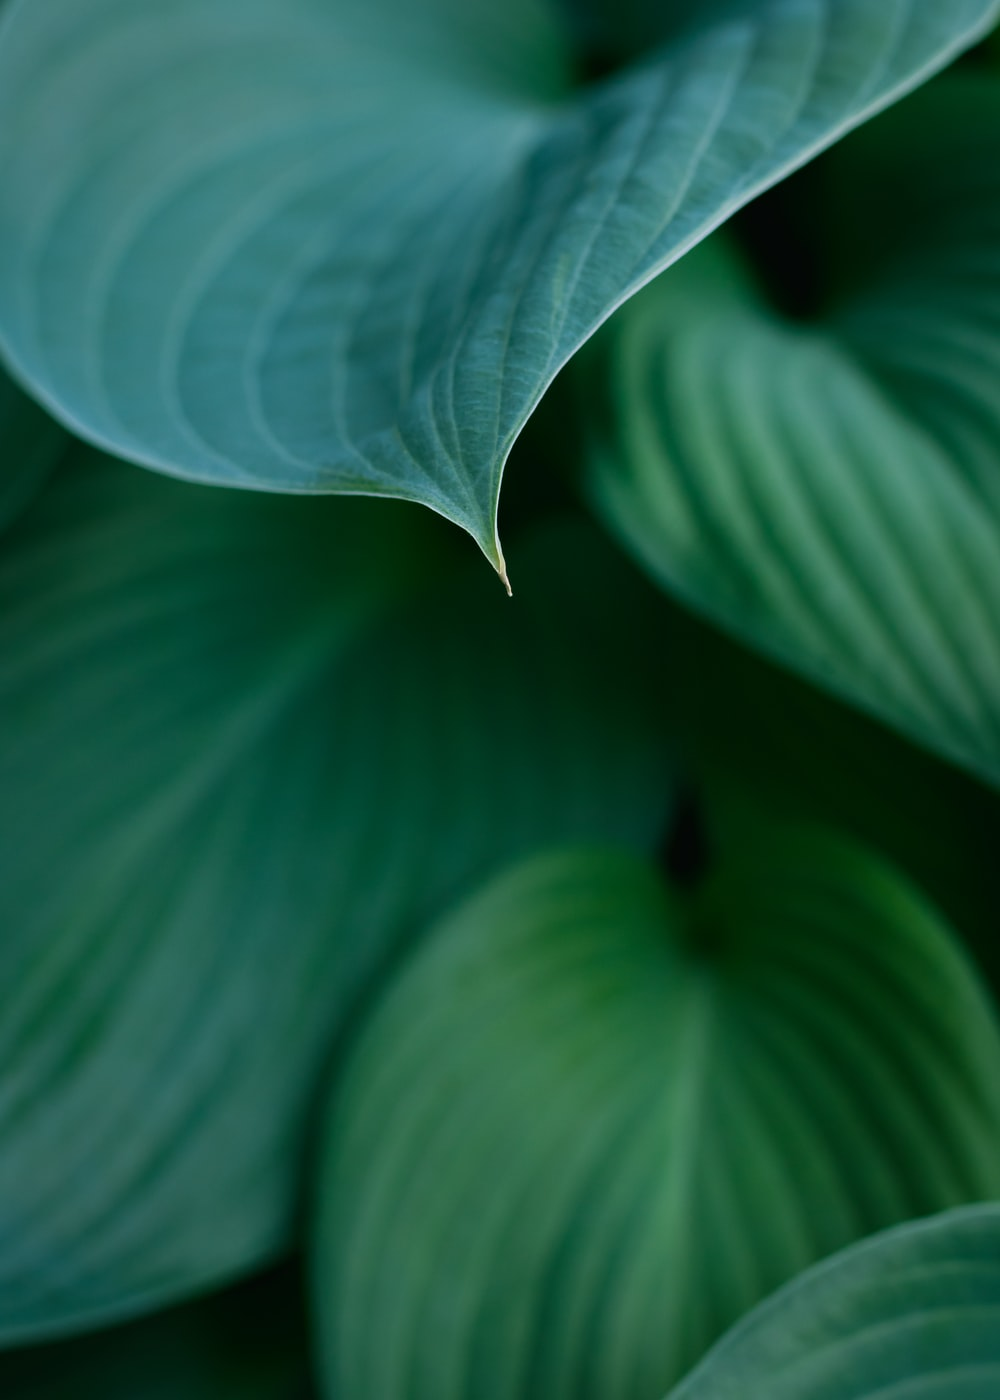 white leaf in close up photography